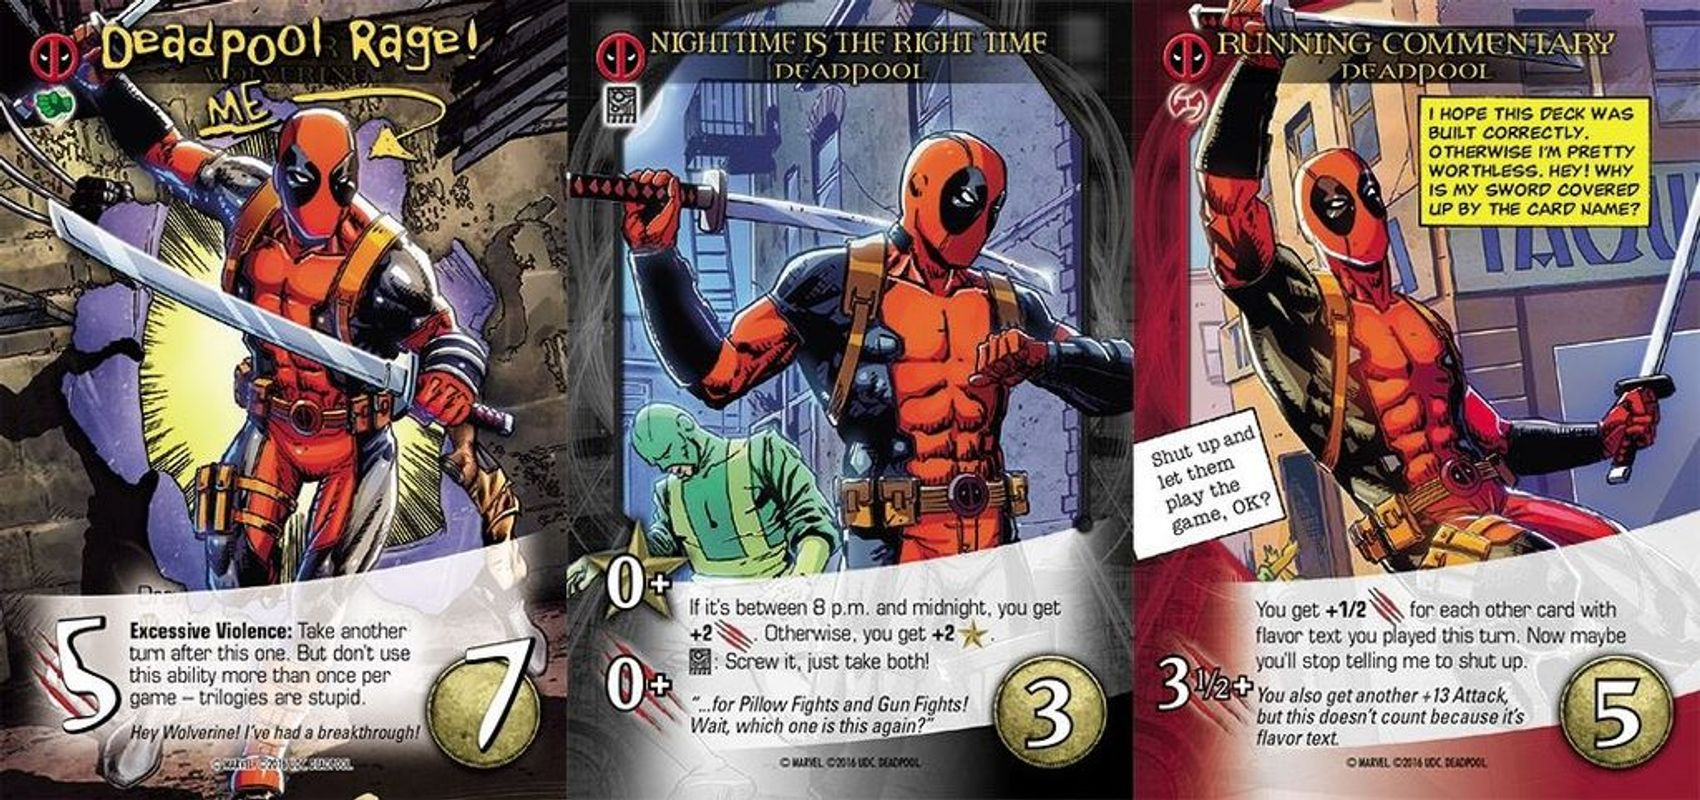 Legendary: Deadpool cards